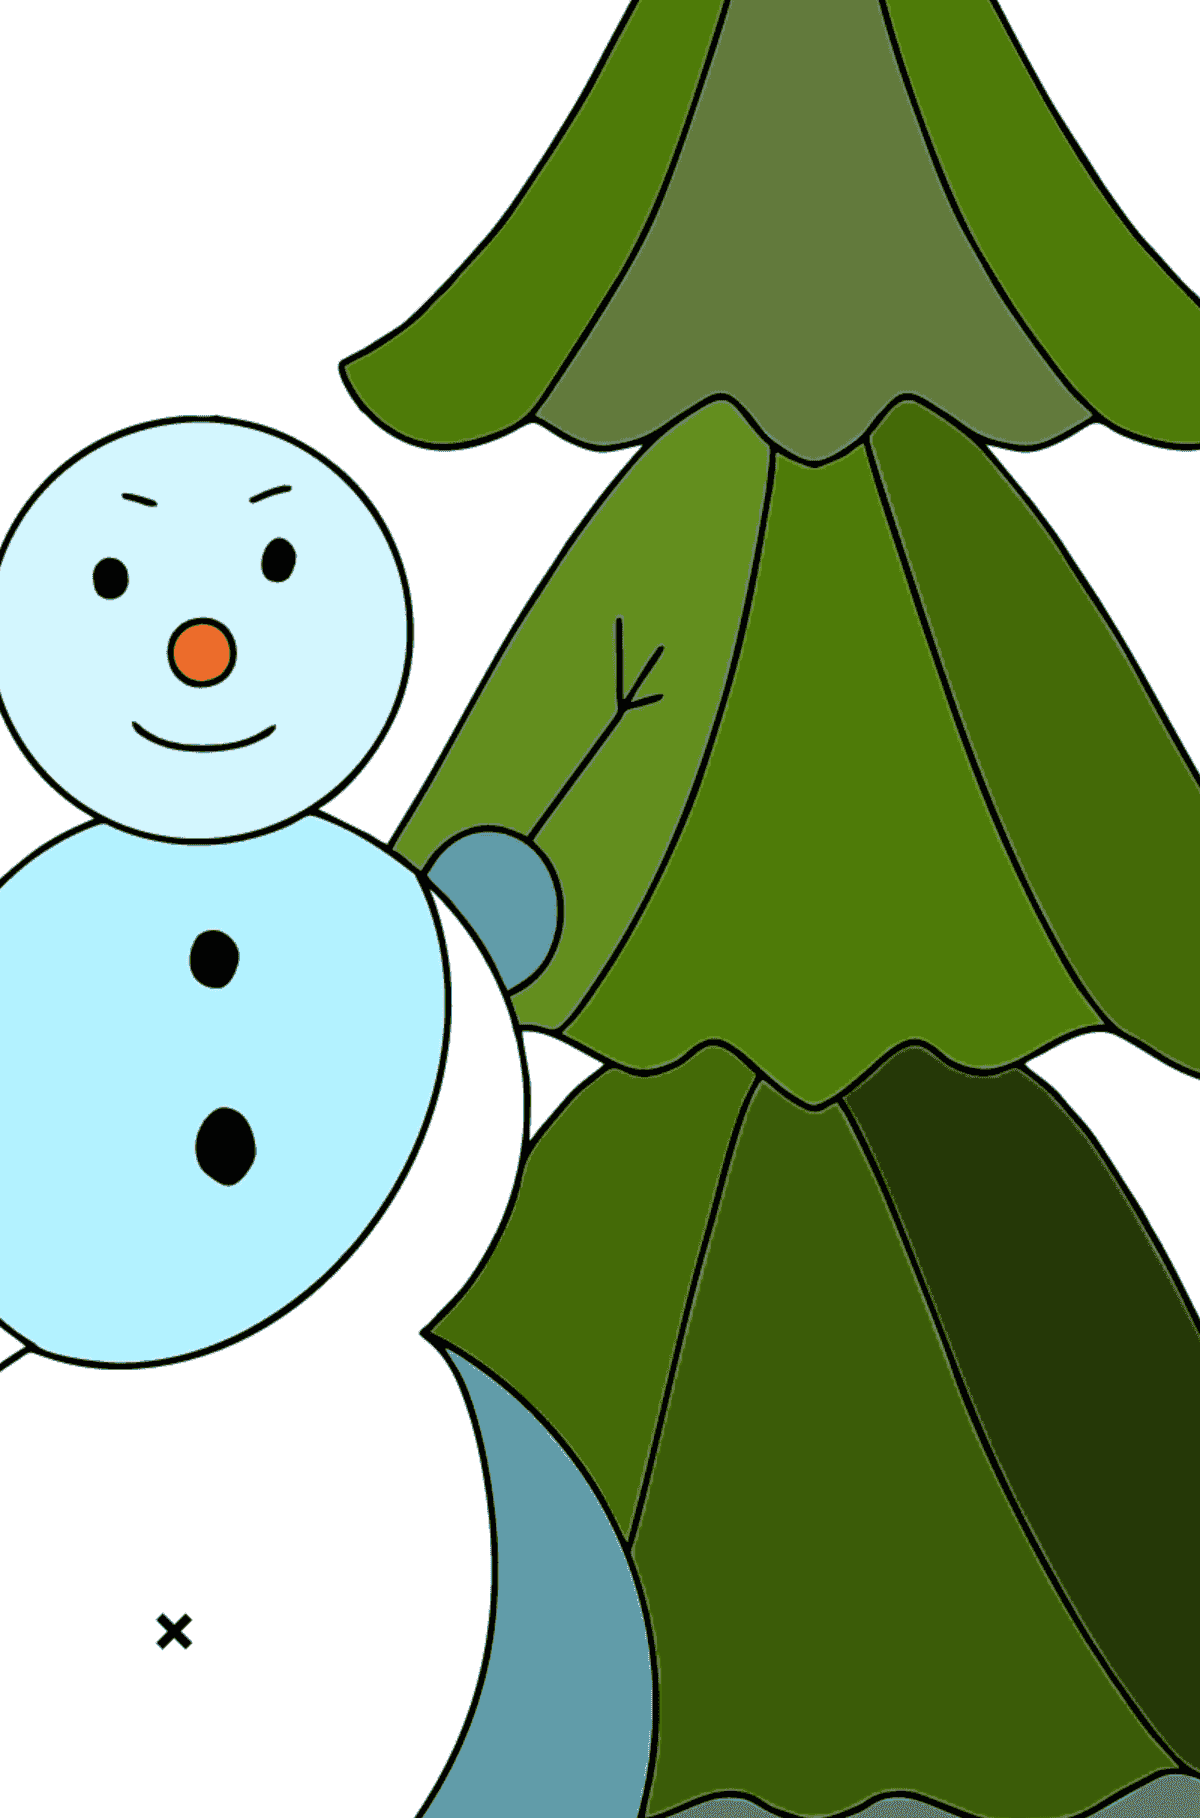 Winter Coloring Page - A Snowman with a Beautiful Christmas Tree for Kids  - Color by Symbols and Geometric Shapes